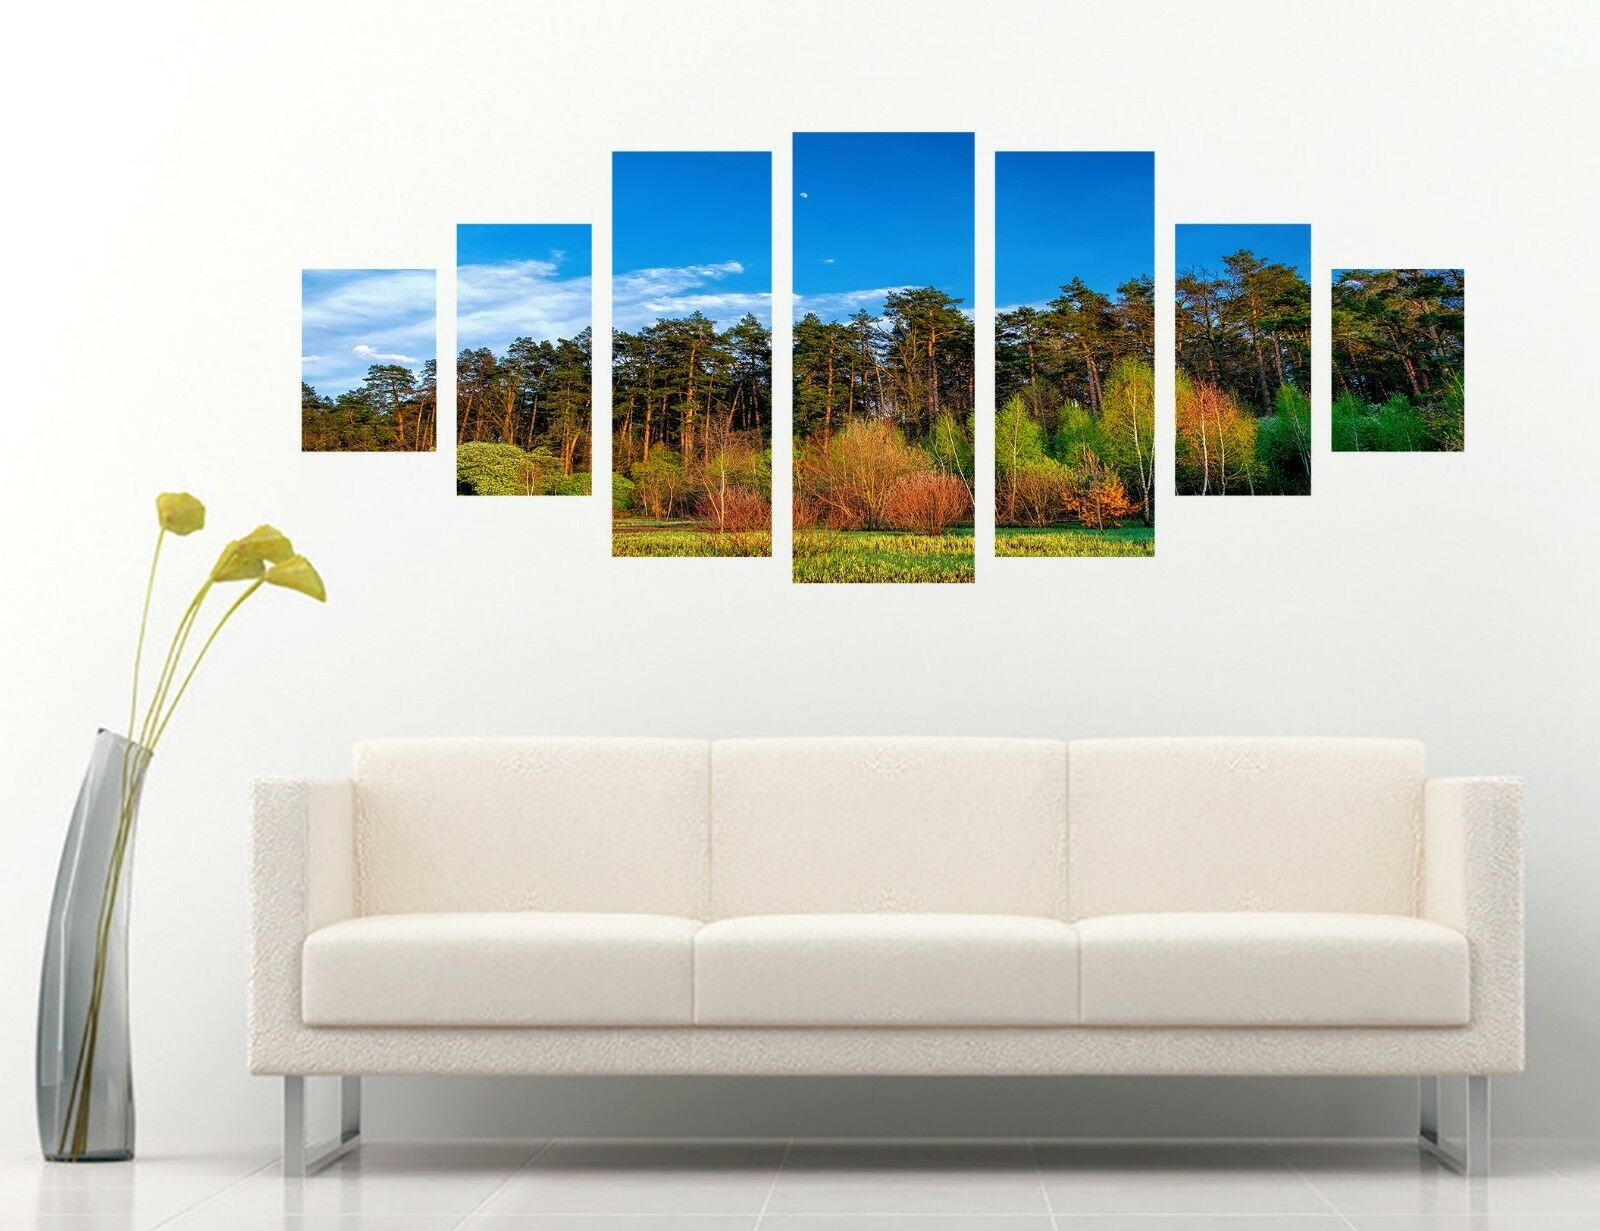 3D Sky Forest 546 Unframed Print Wall Paper Decal Wall Deco Indoor AJ Wall